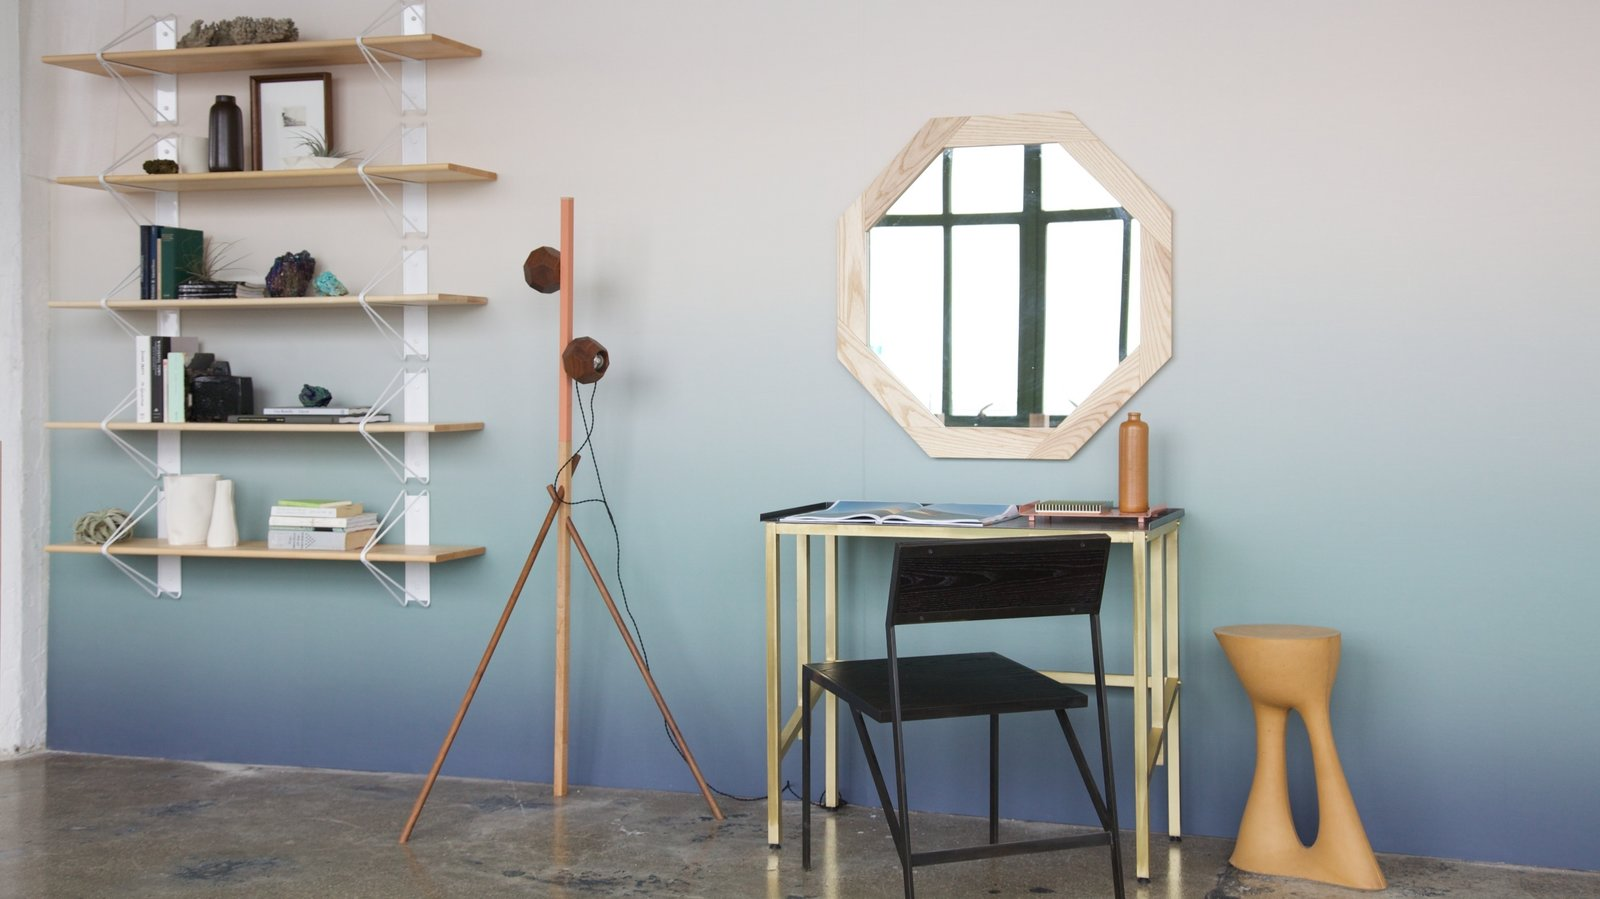 Among WorkOf's collection are, from left to right, shelving by Souda Collective, floor lamp by Bower, desk by Saw, chair by Farrah Sit, trays by Saw, mirror by David Gaynor, and side table by Souda. The wallpaper is by Calico Wallpaper. Photo by Emily Johnston.  Photo 1 of 6 in WorkOf: Building a Community of Brooklyn Makers